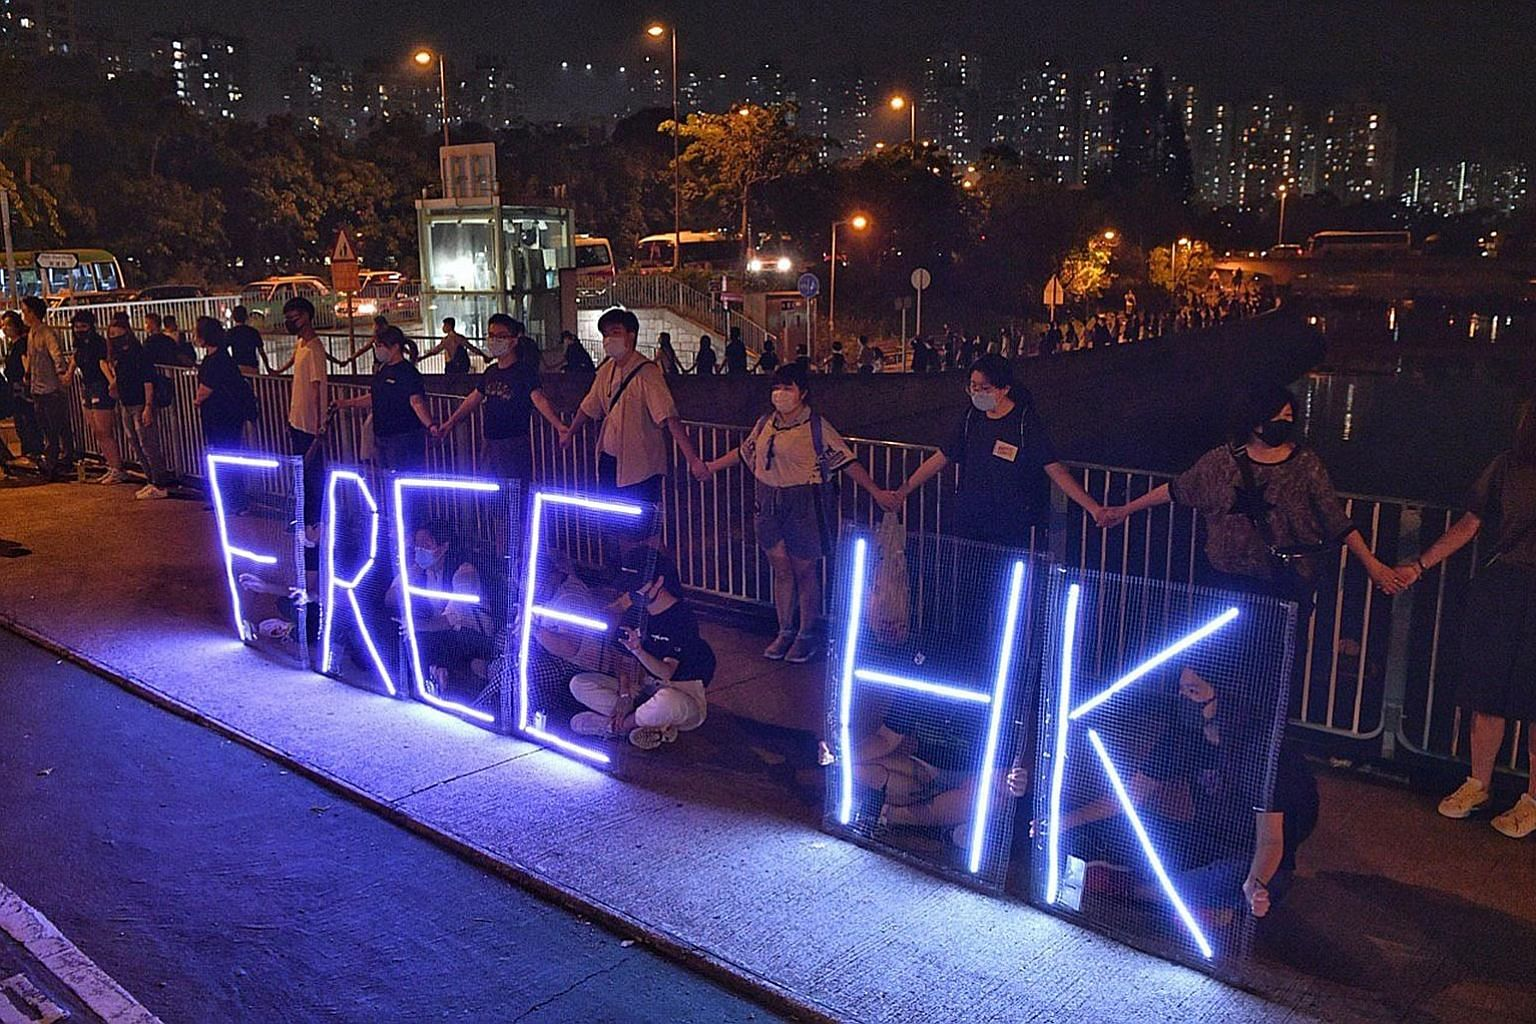 Protesters forming a human chain in Hong Kong's Tai Po District last night, as rallies continued.